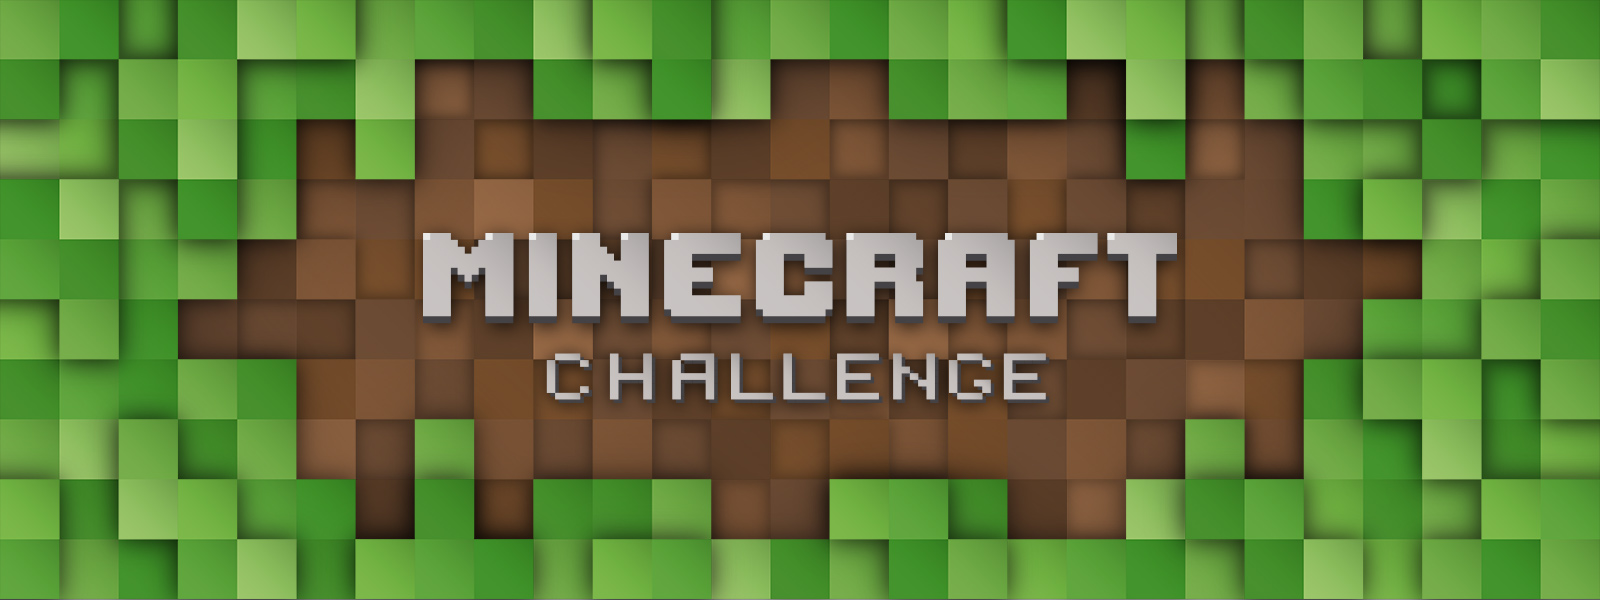 Instructables Minecraft Challenge 2018